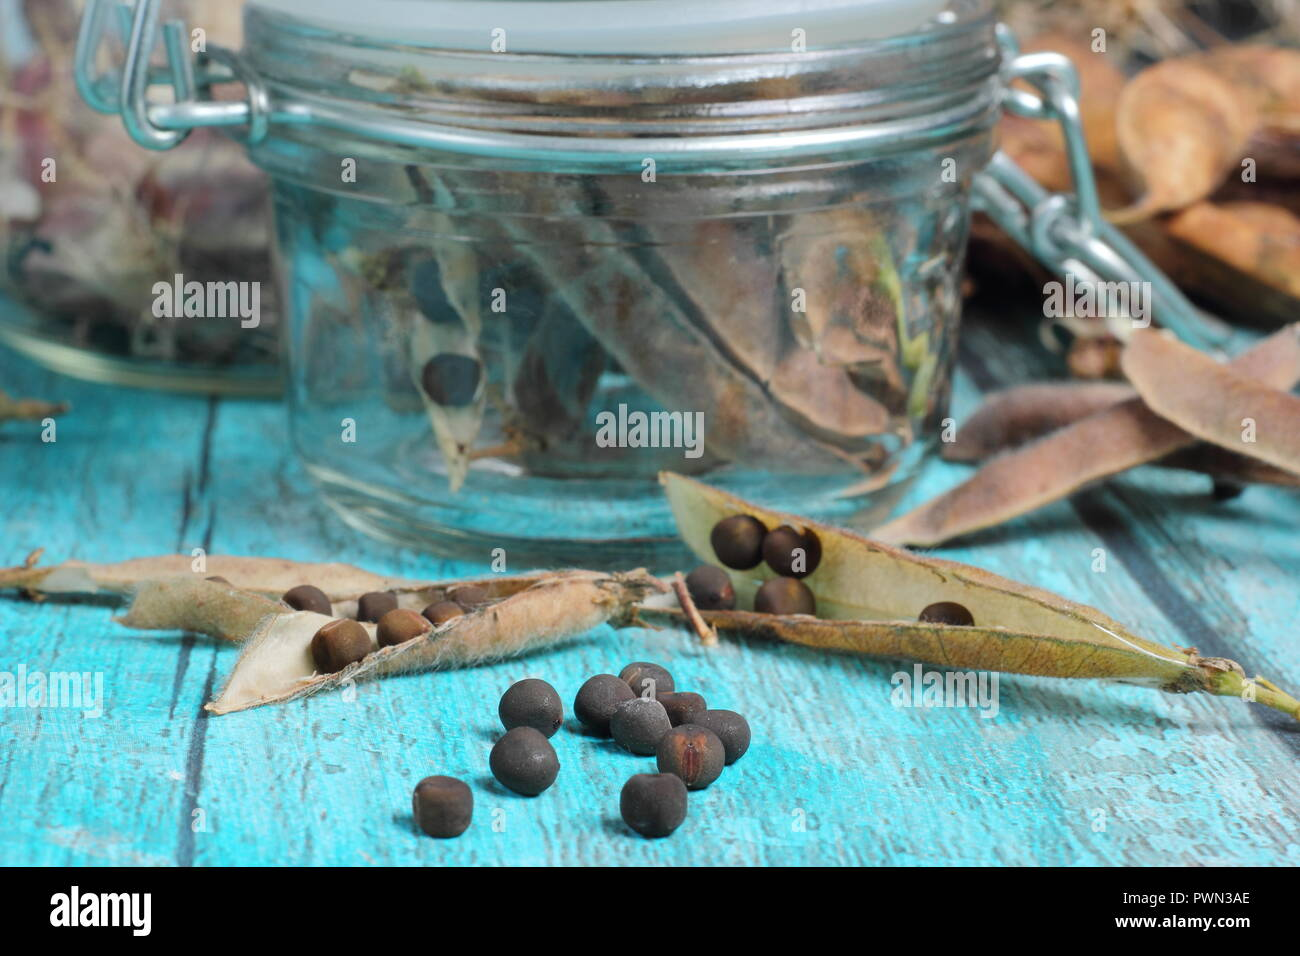 Lathyrus odoratus.  Dried sweet pea seedheads stored in air tight glass jar ready for future planting, UK - Stock Image